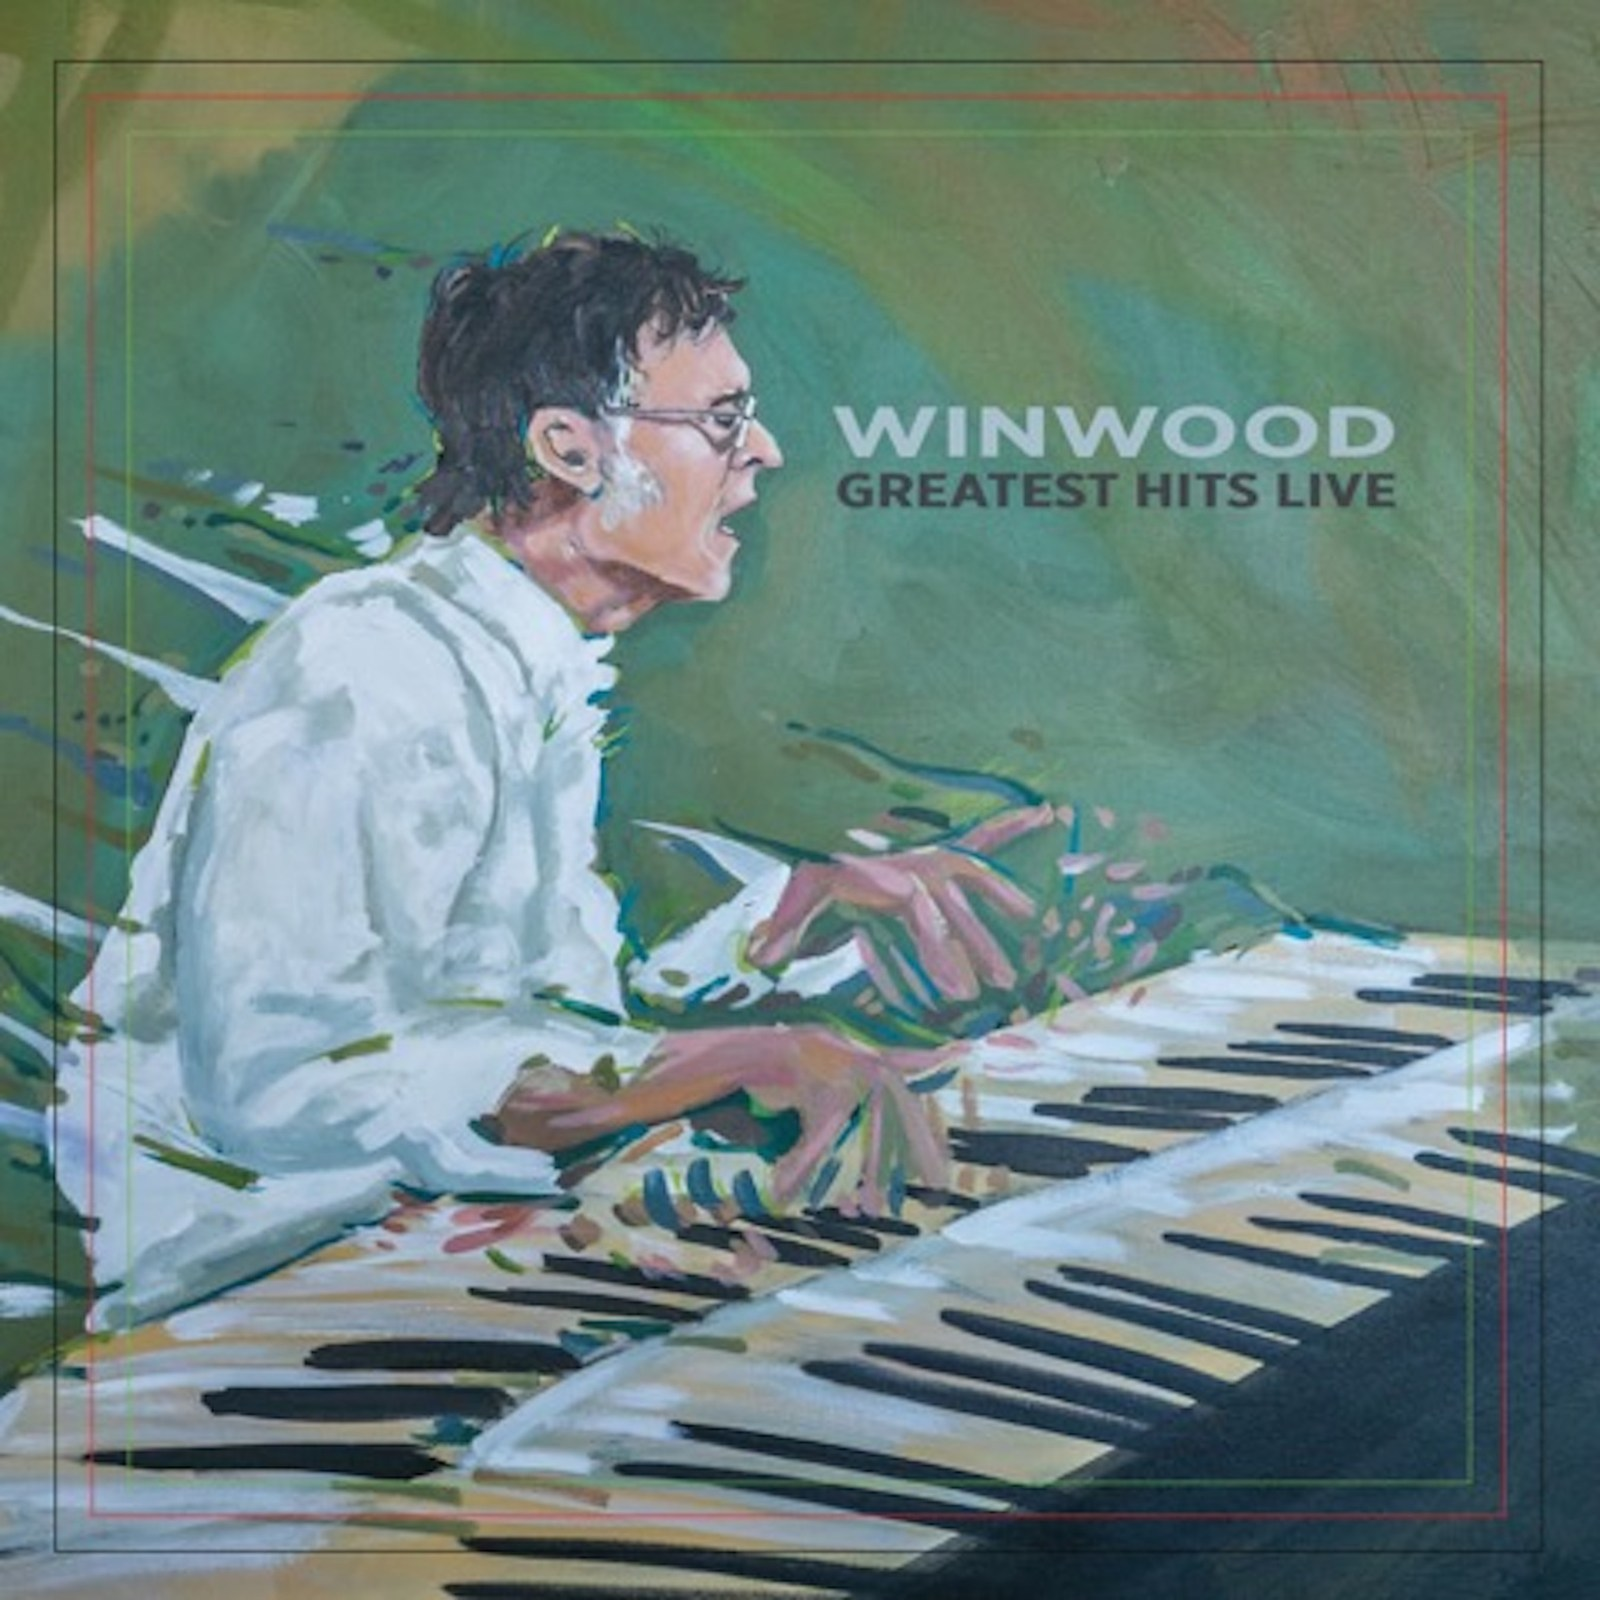 Steve Winwood To Release Greatest Hits Live His First